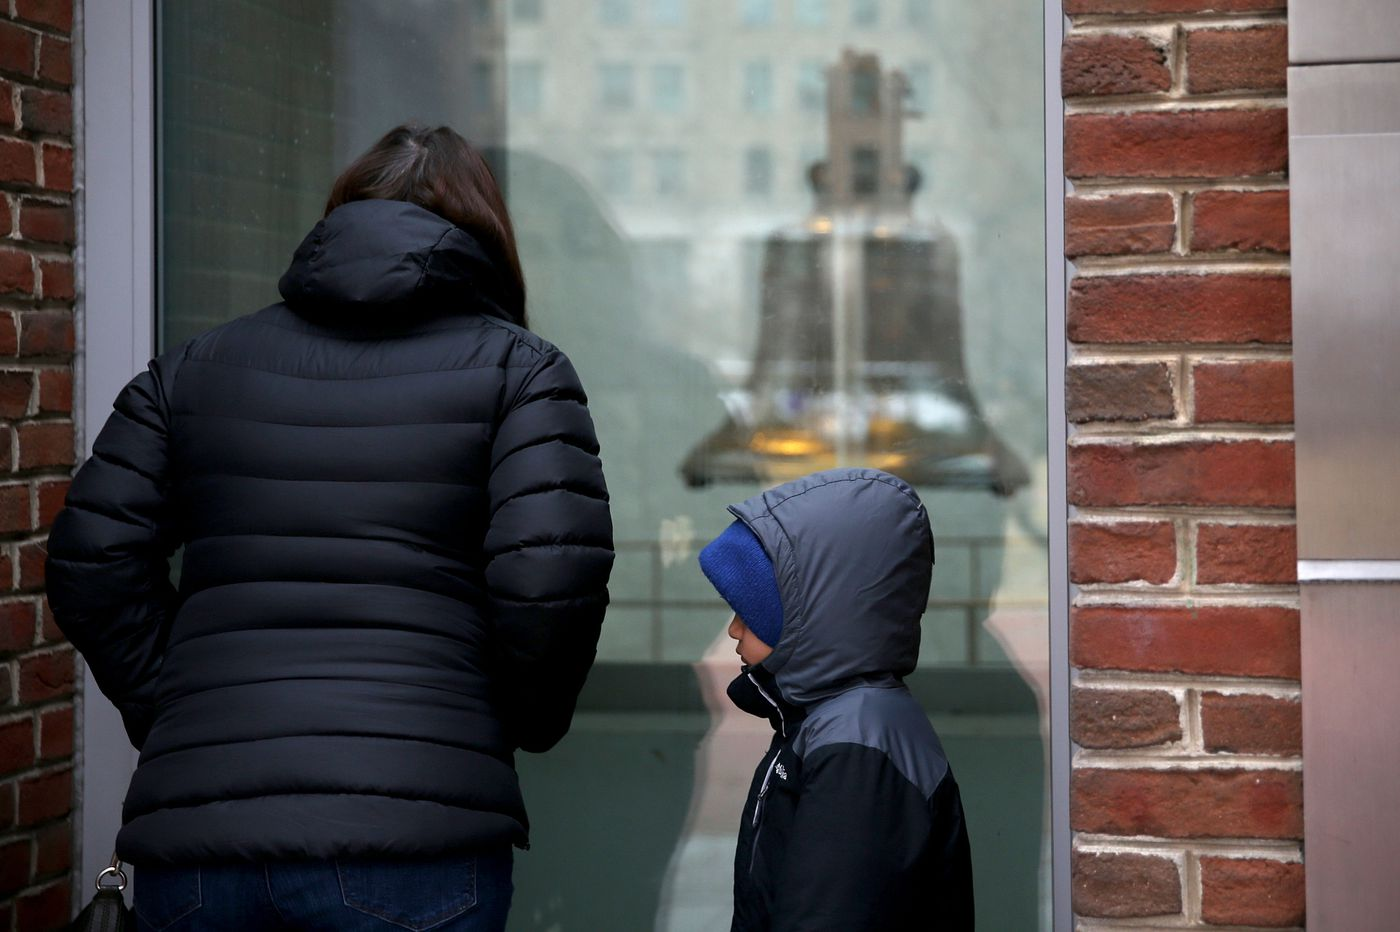 Tourists turned away at Liberty Bell, Independence Hall amid government shutdown